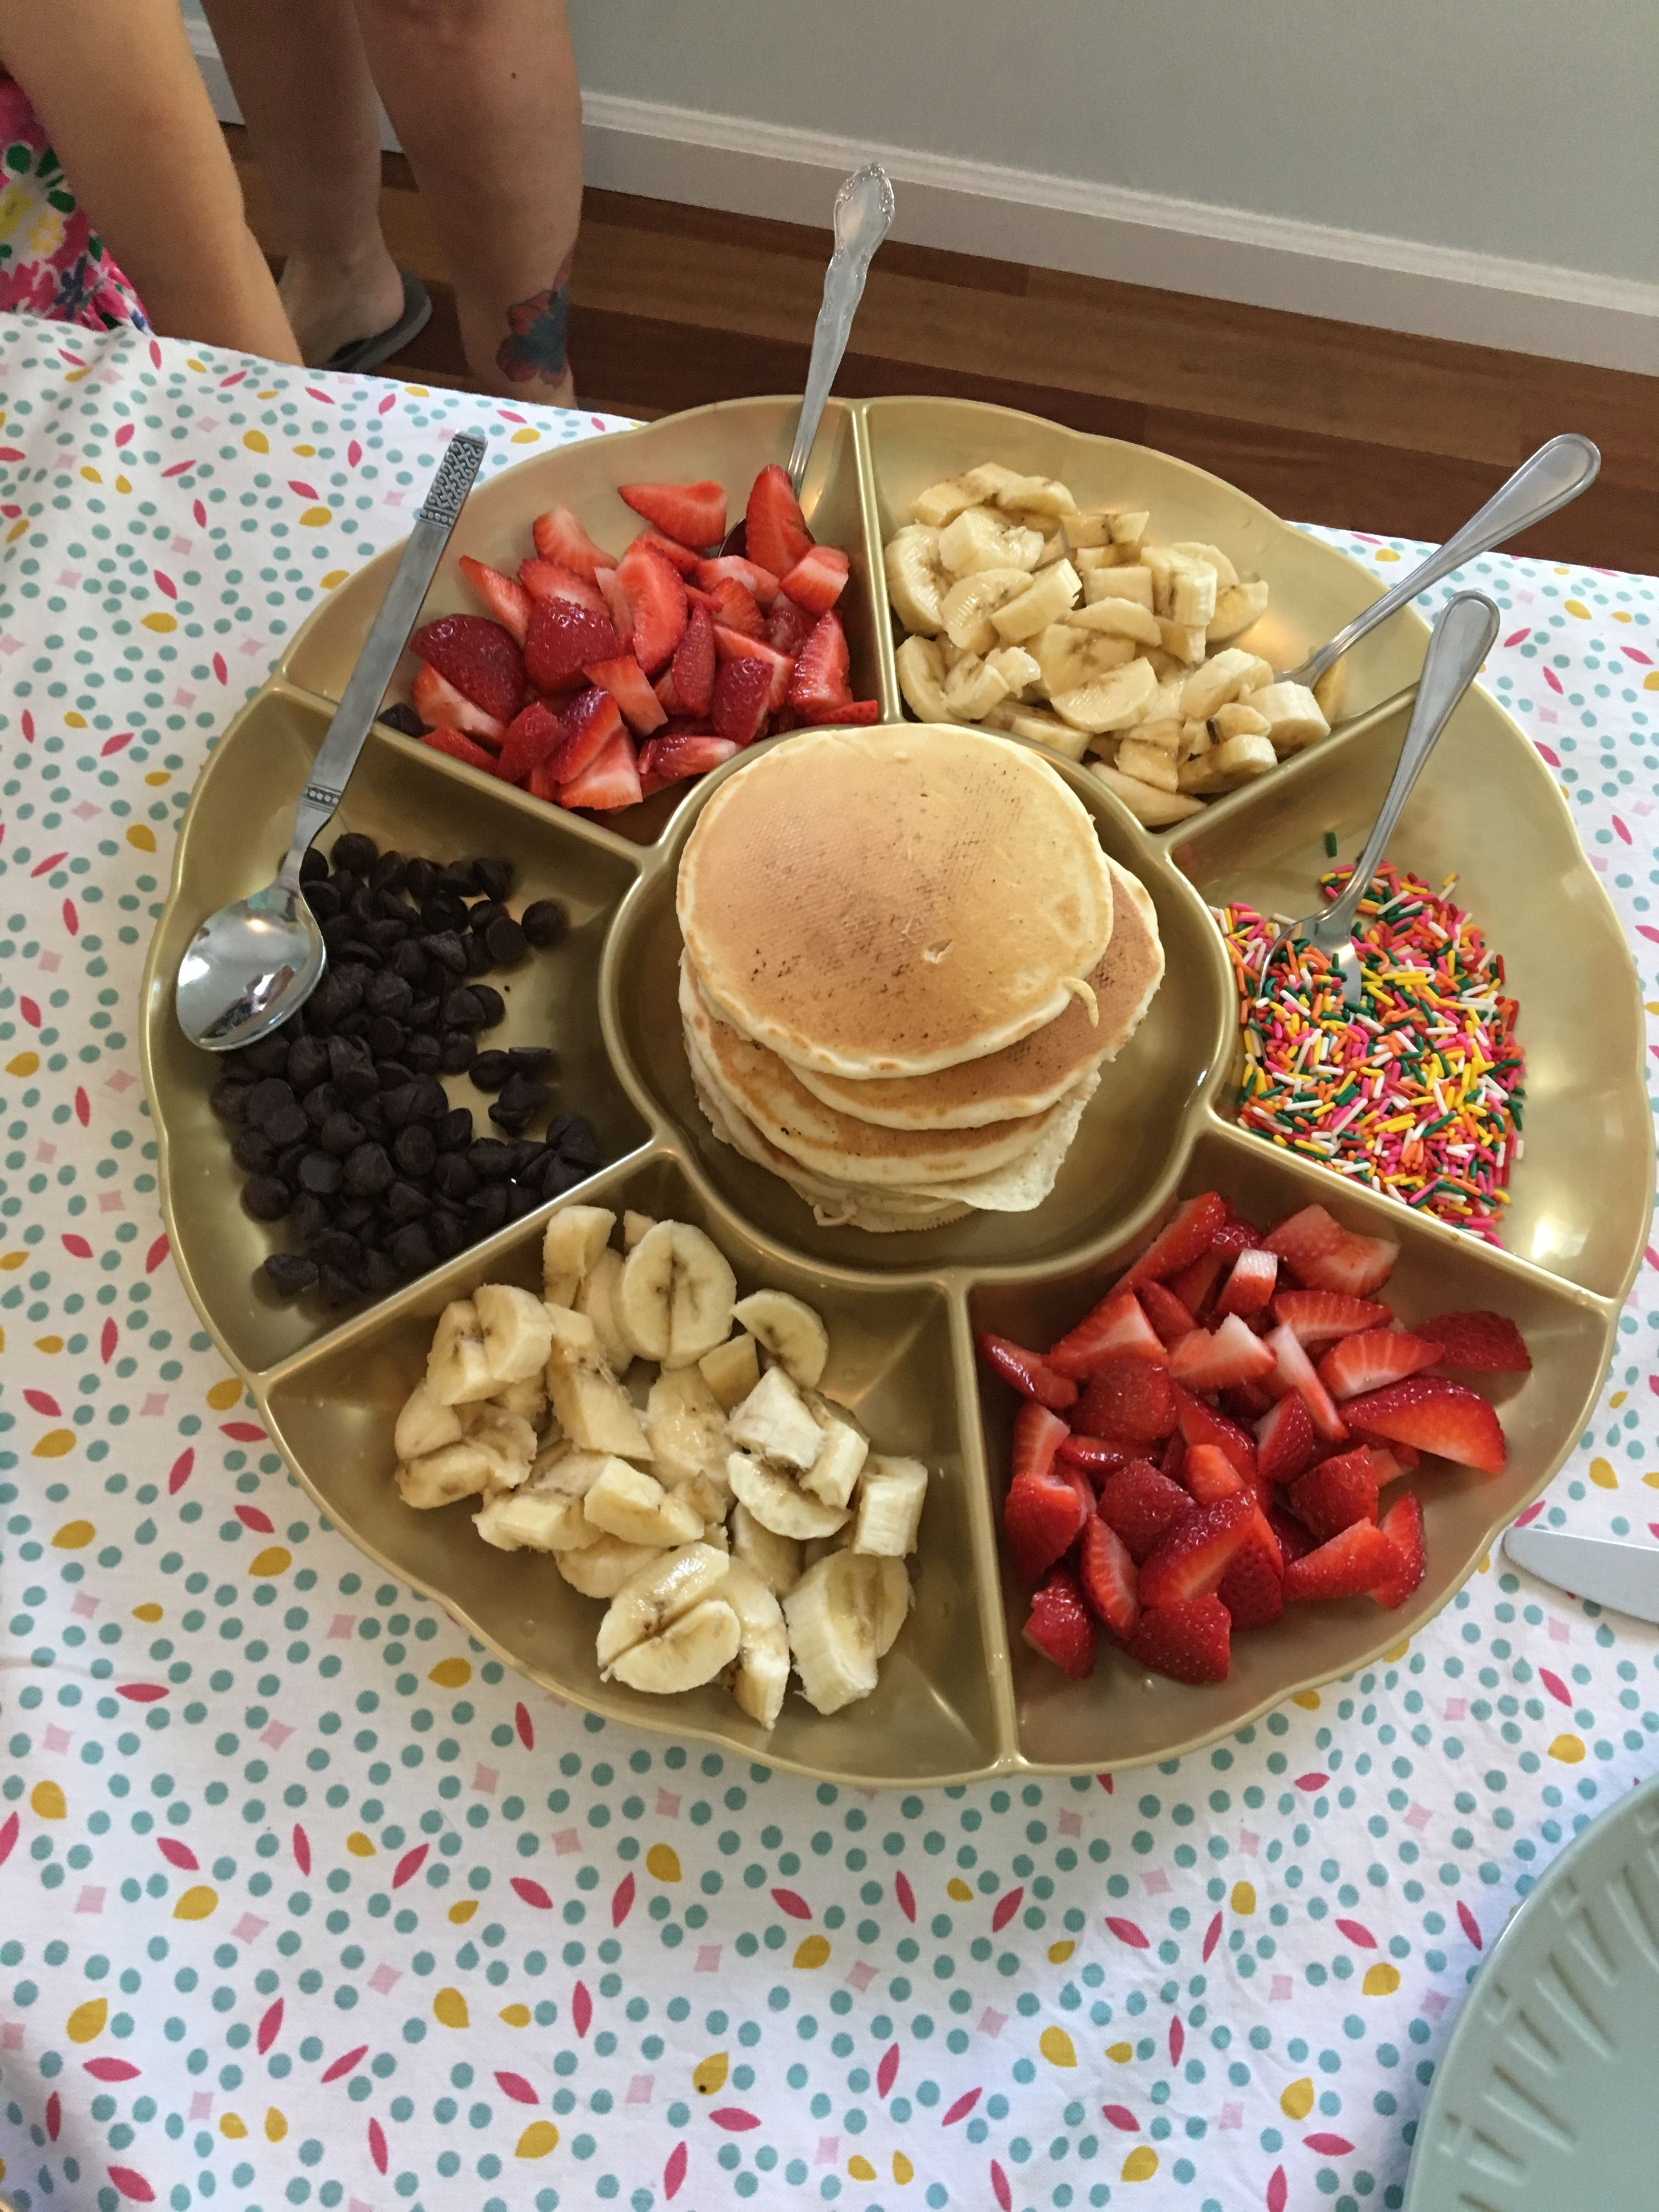 Pancakes with Toppings